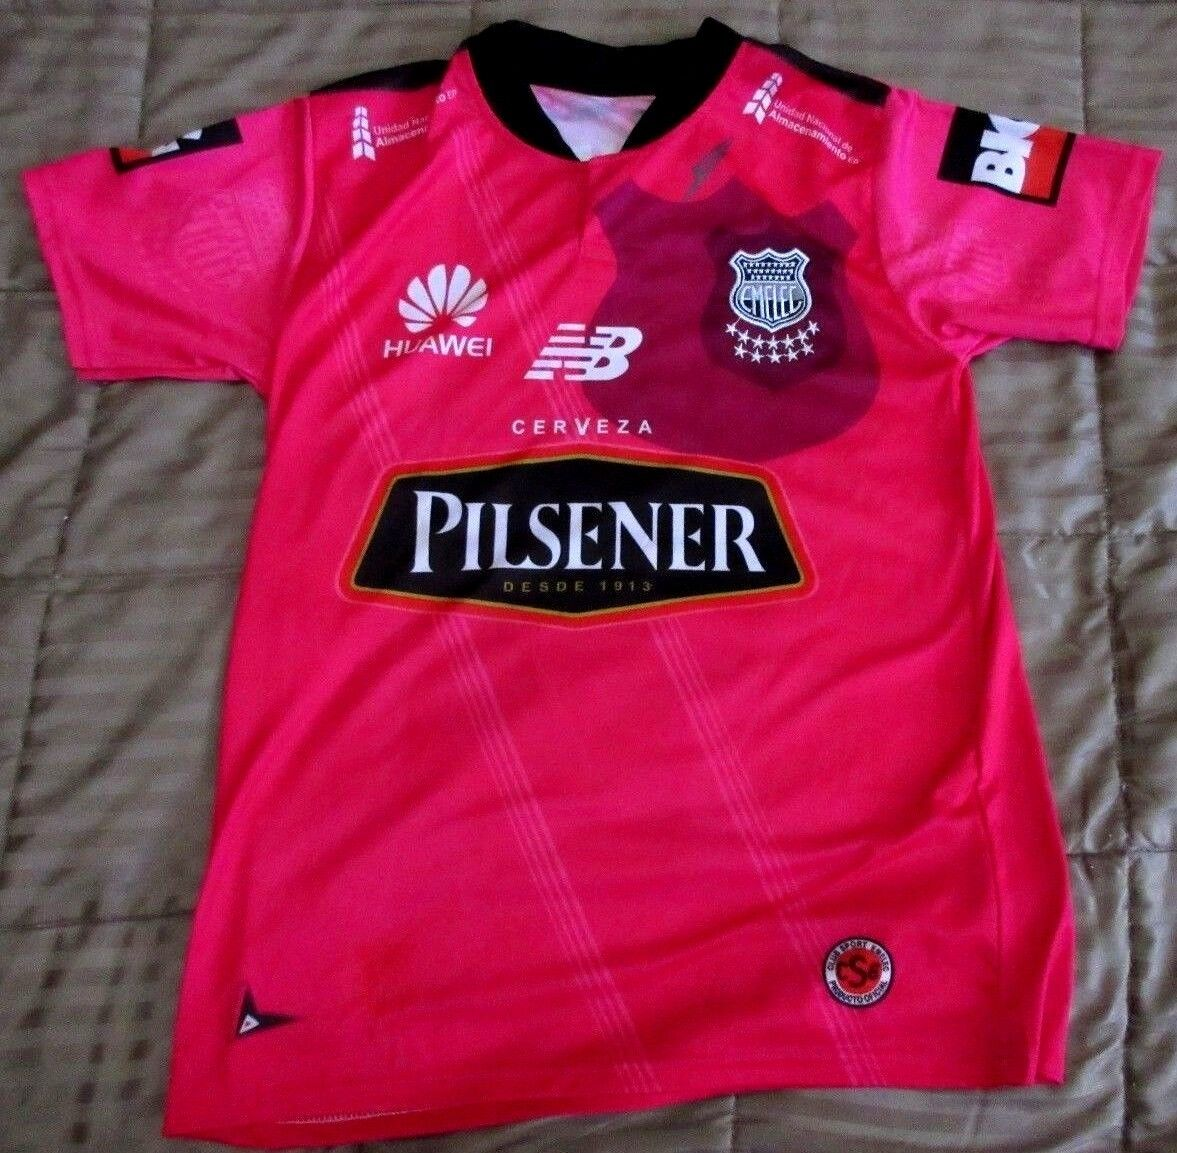 Emelec Giancola 9 Club Sport Emelec Carmine Red Jersey  Small